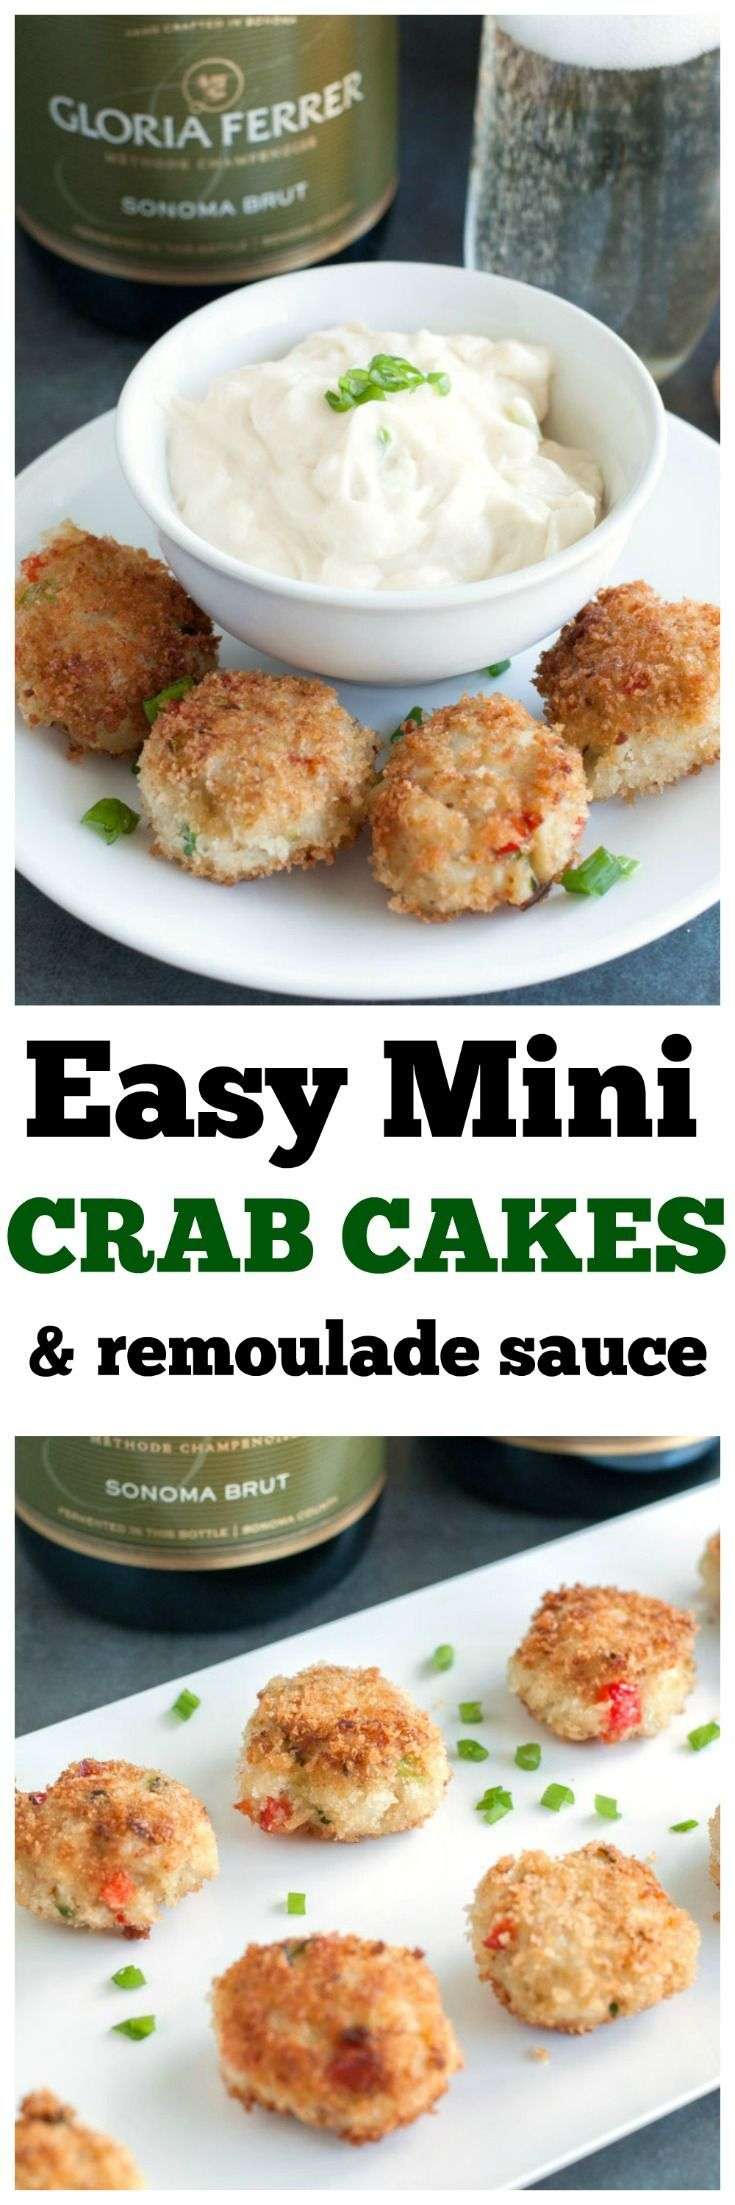 Easy Mini Crab Cakes. Perfect appetizer for party or holiday. #ad #GloriaFerrer #CLVR #Crabcakes #crab #appetizer